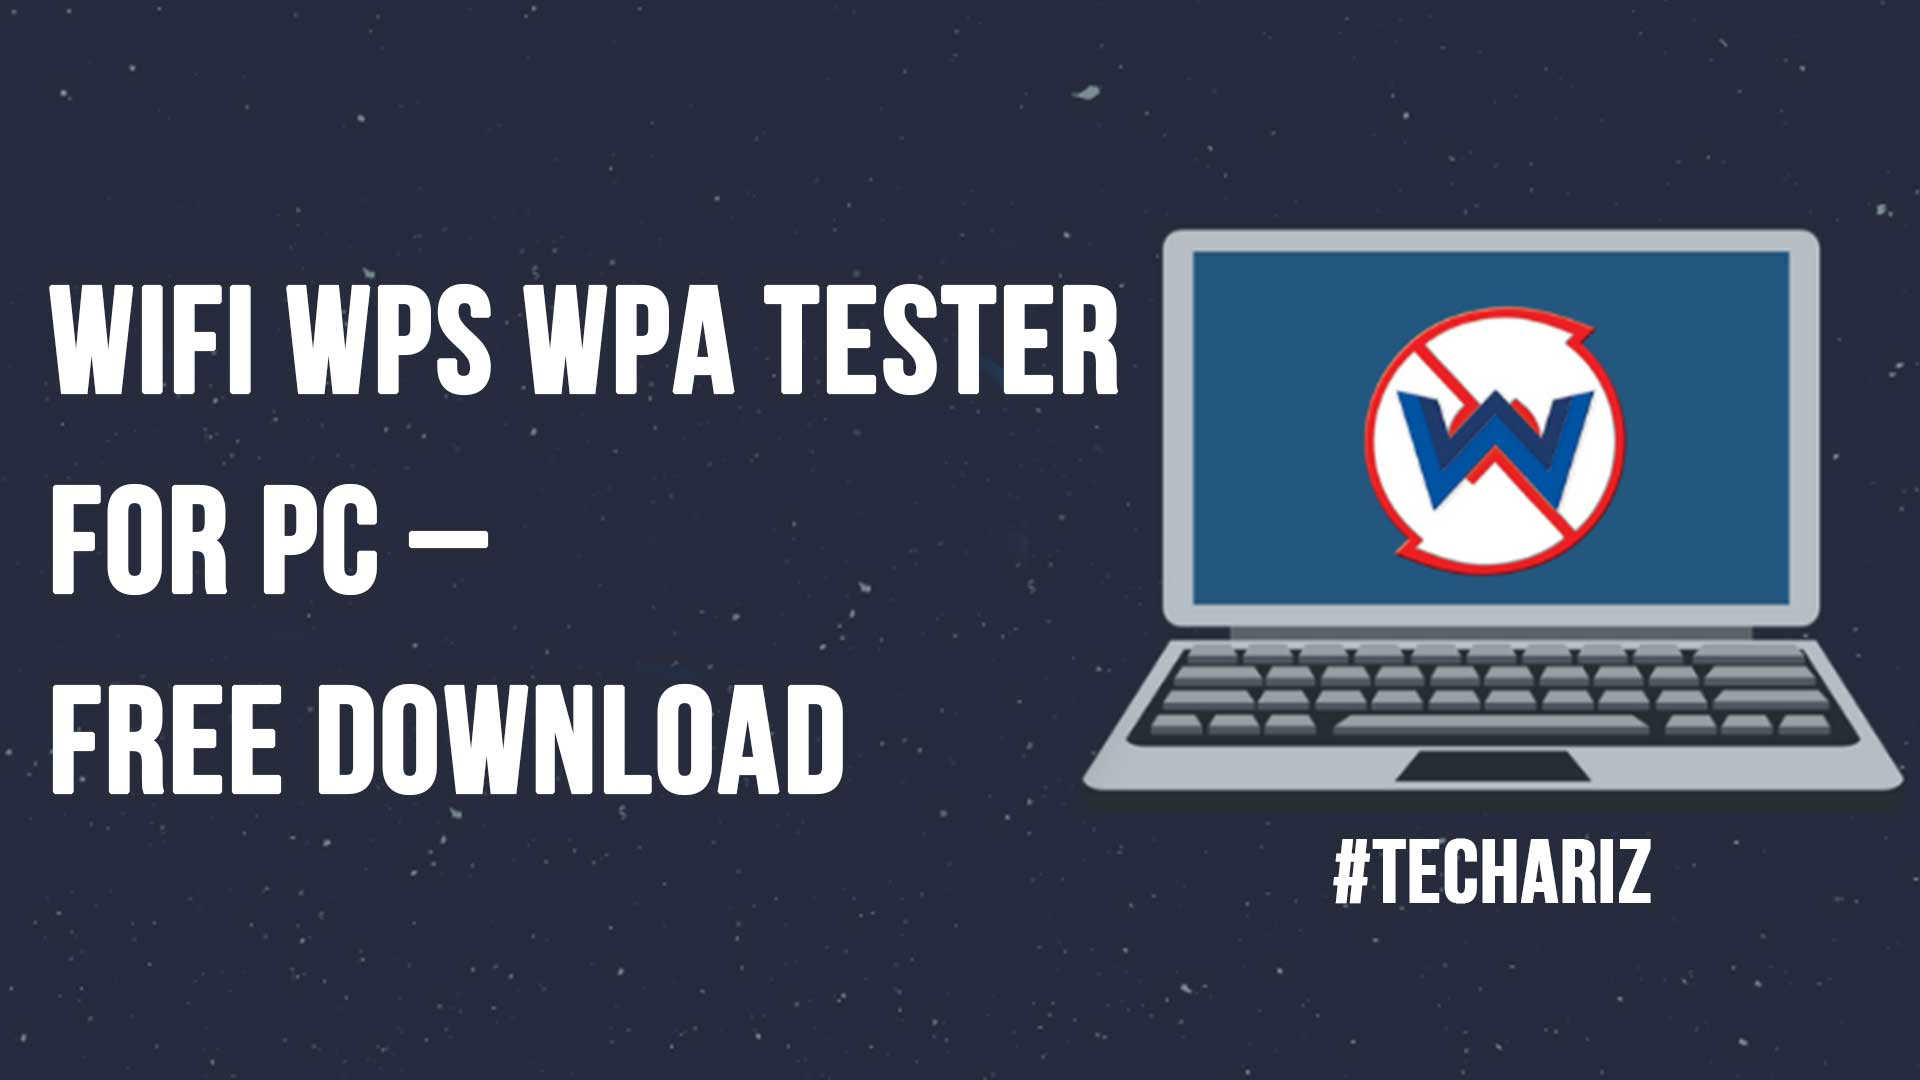 WIFI WPS WPA TESTER for PC Free Download